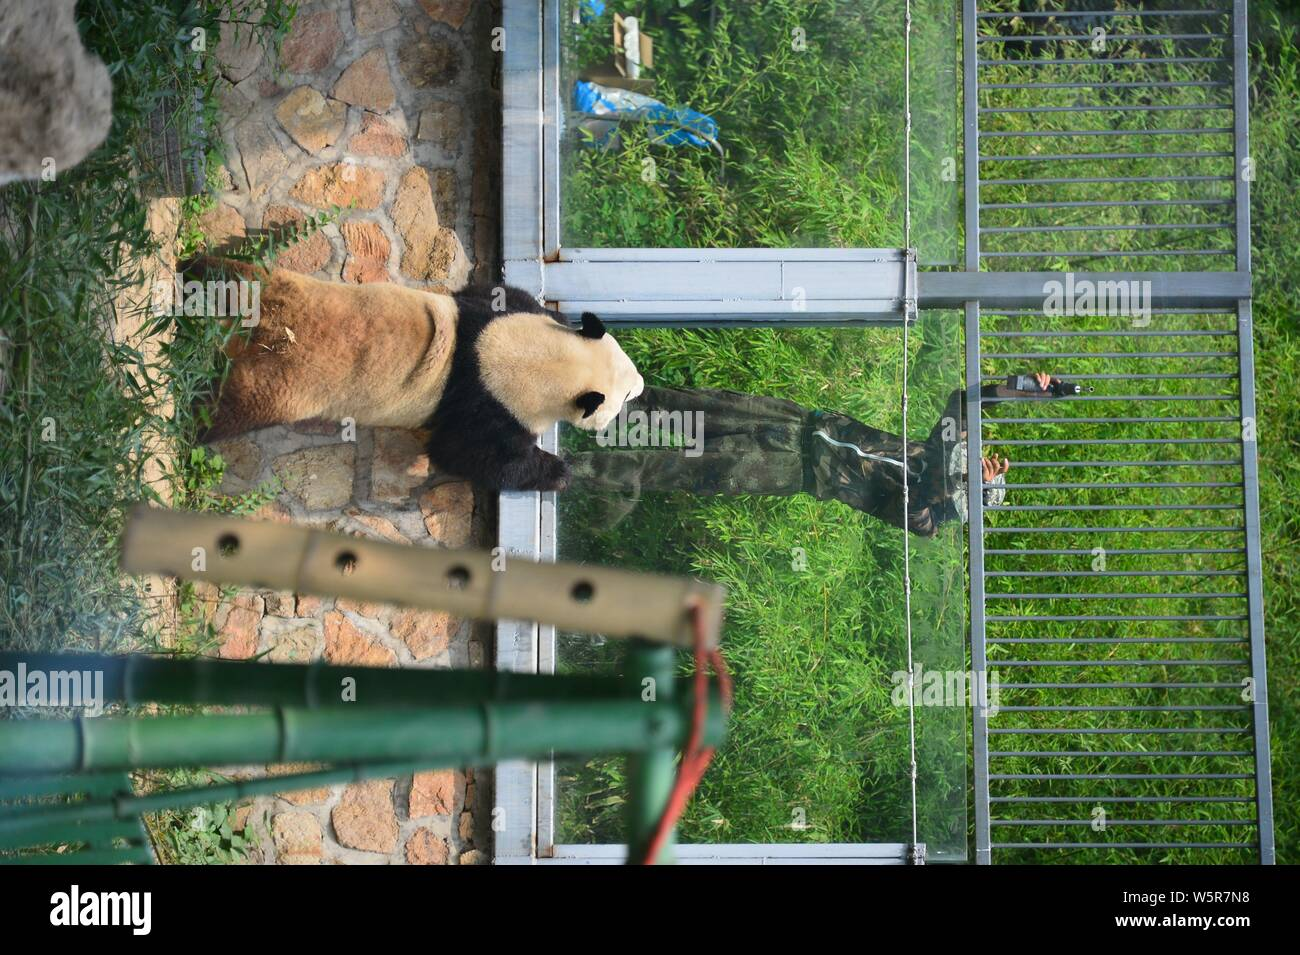 The giant panda Meng Lan interacts with a worker at the Beijing zoo in Beijing, China, 17 June 2019. Stock Photo